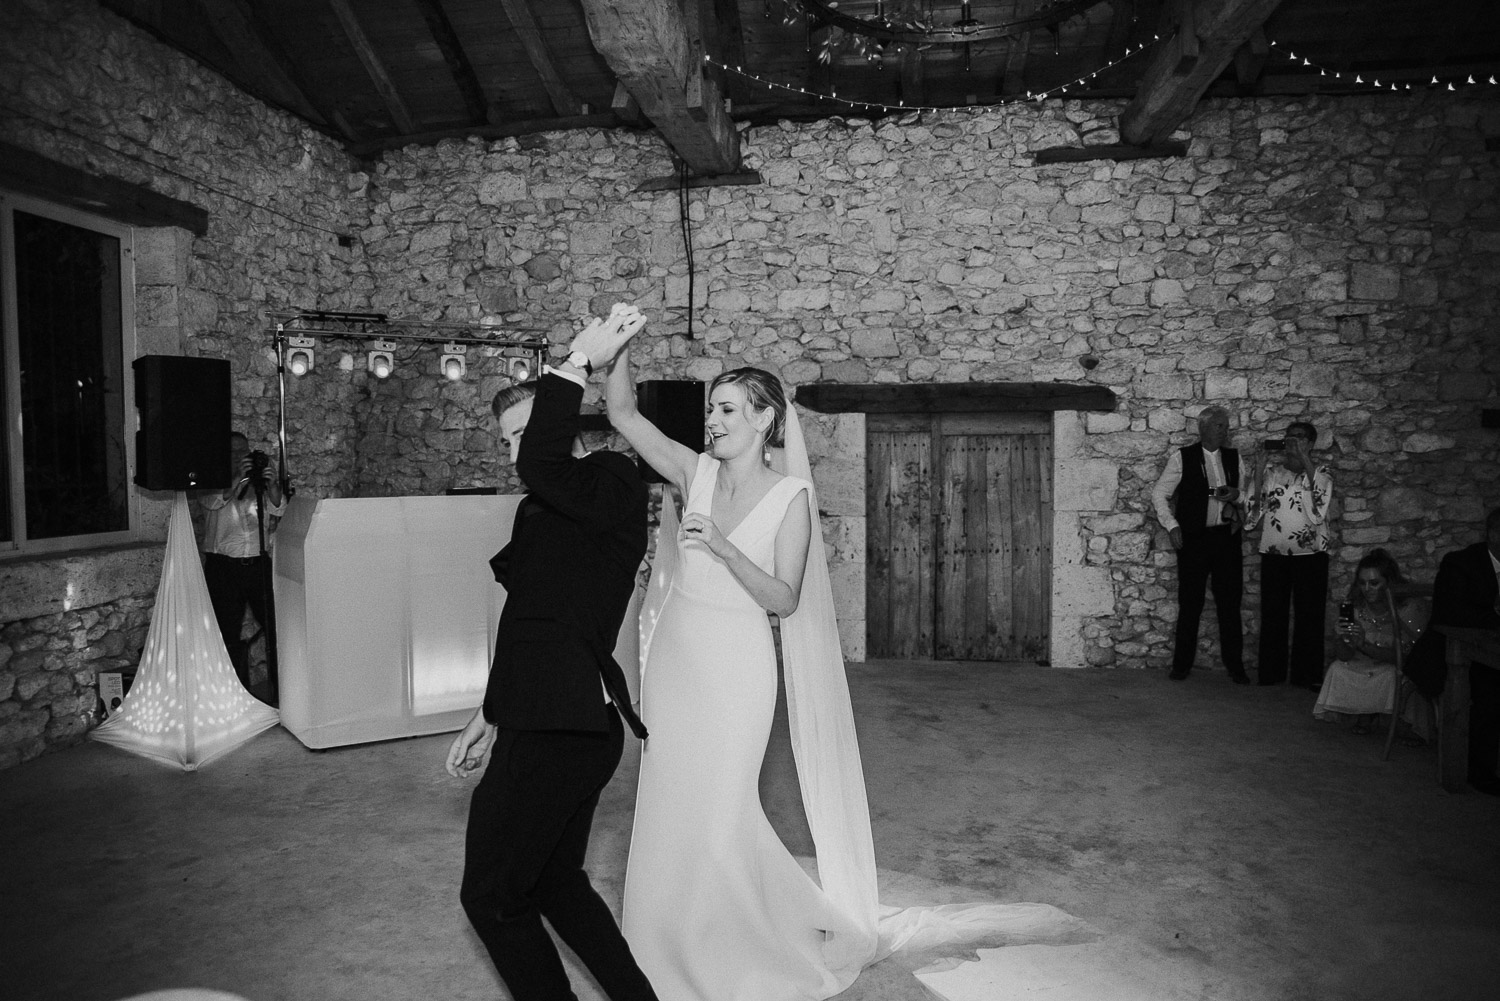 dordogne_eymet_wedding_france_katy_webb_photography_france_UK131